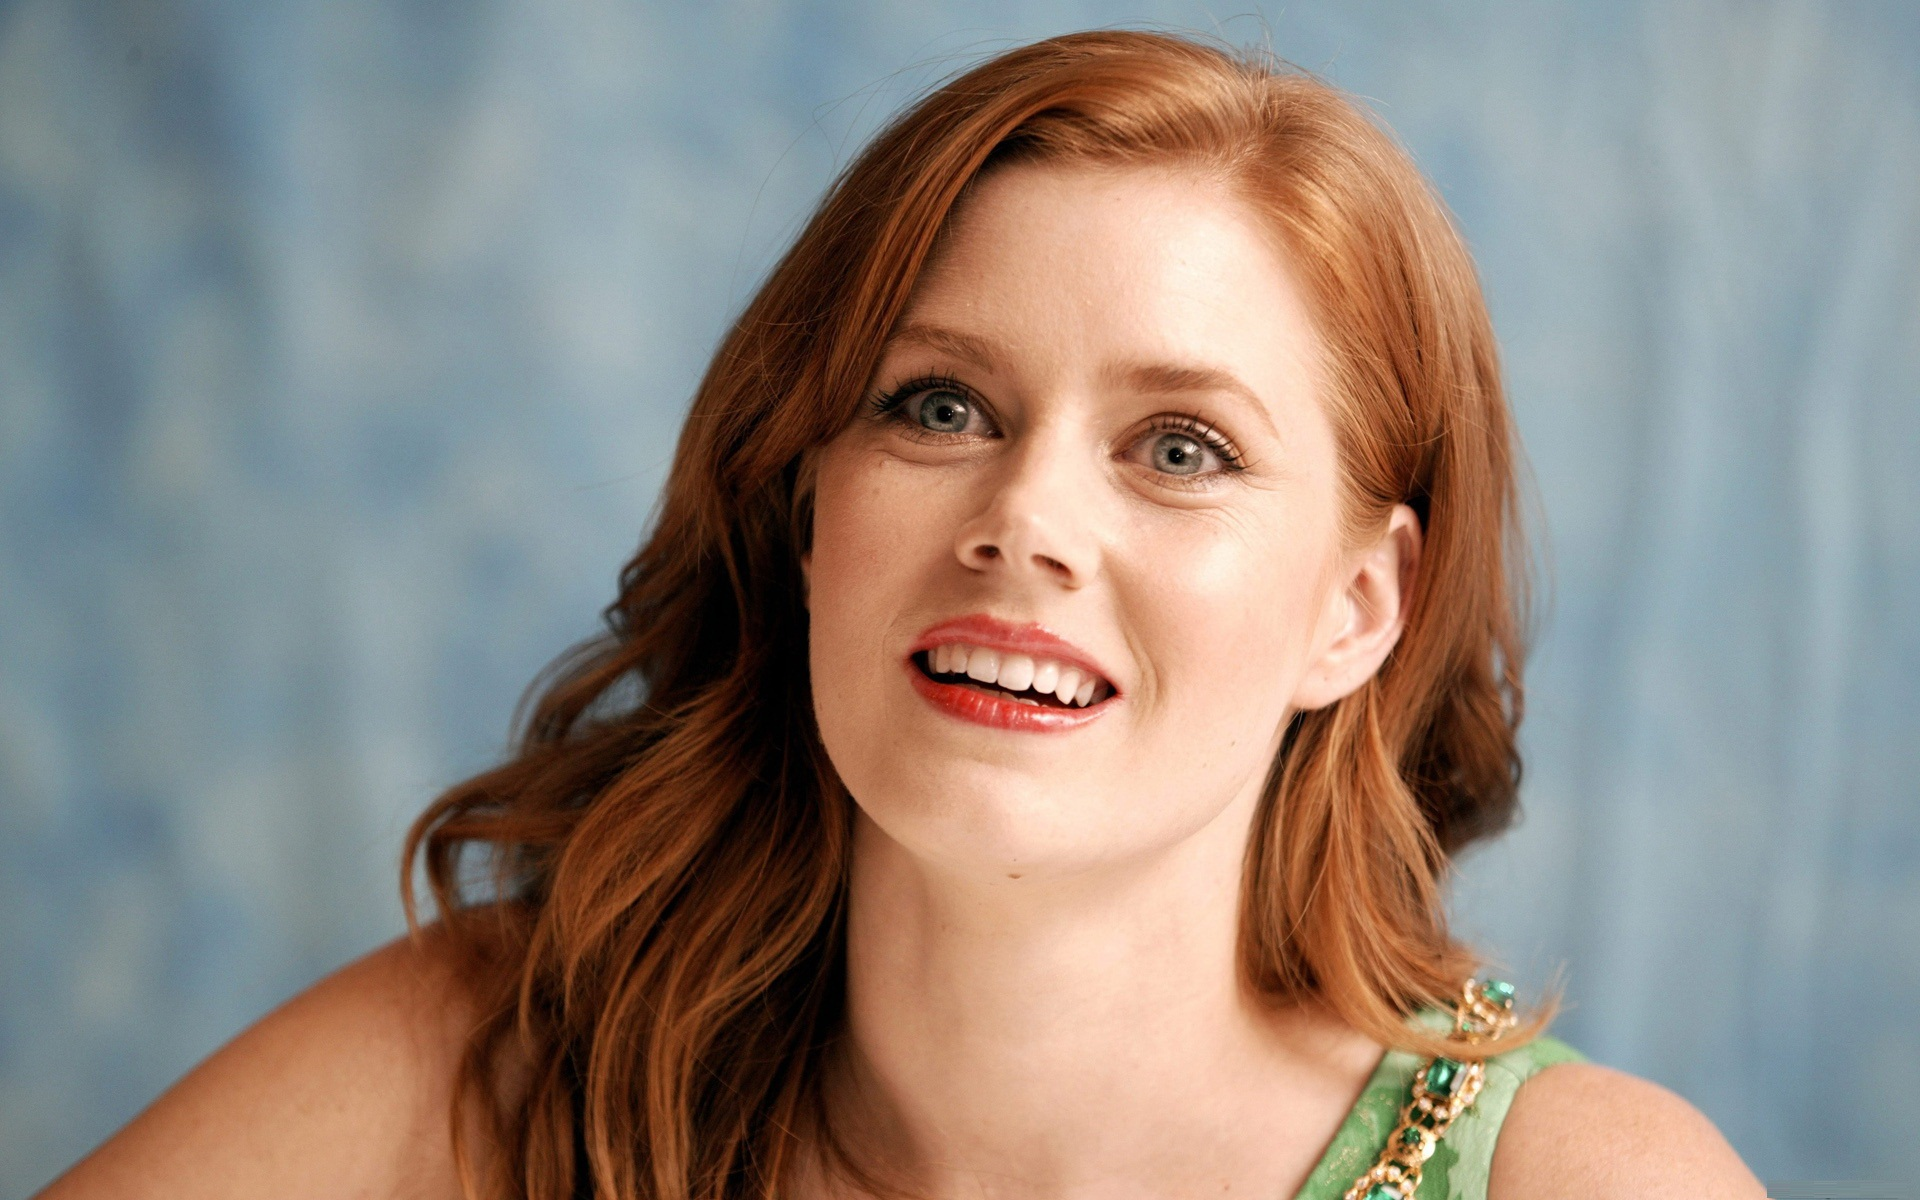 Fantastic Amy Adams Beauty Smile Look Still Hd Mobile Free Desktop Pictures Background